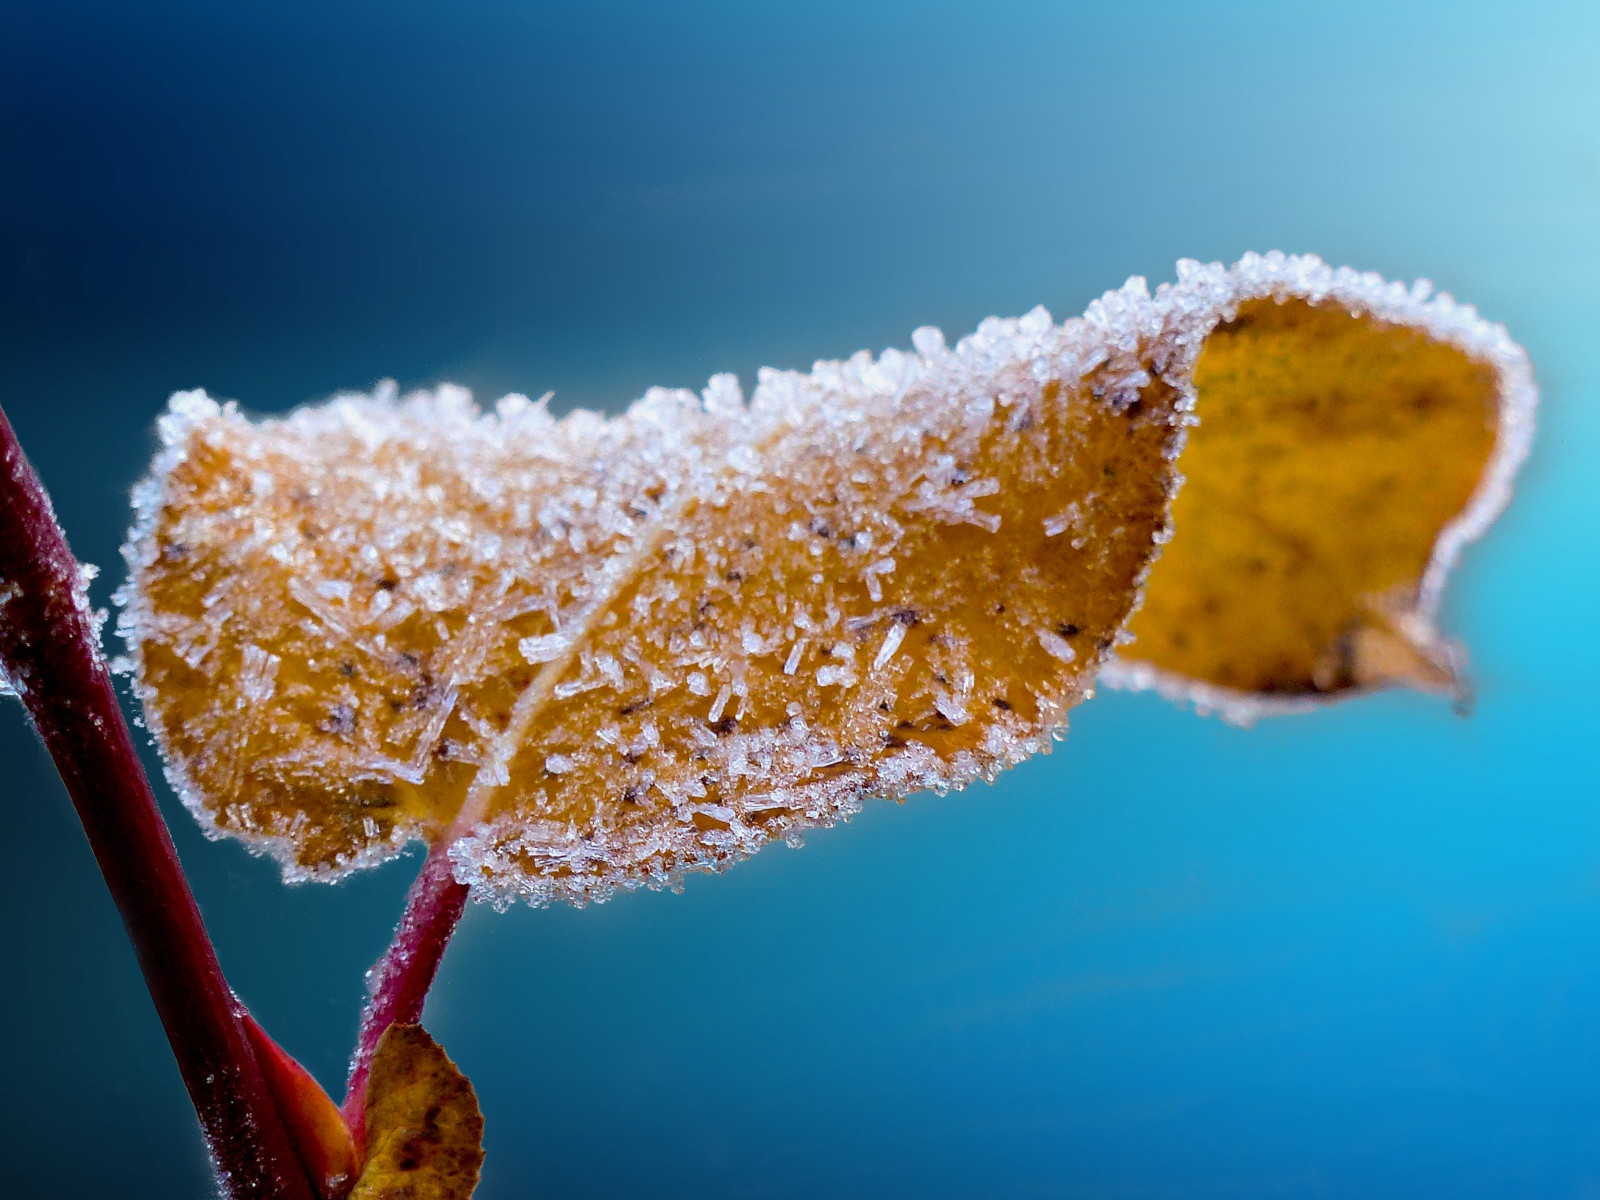 Frosted leaf | 1600x1200 wallpaper